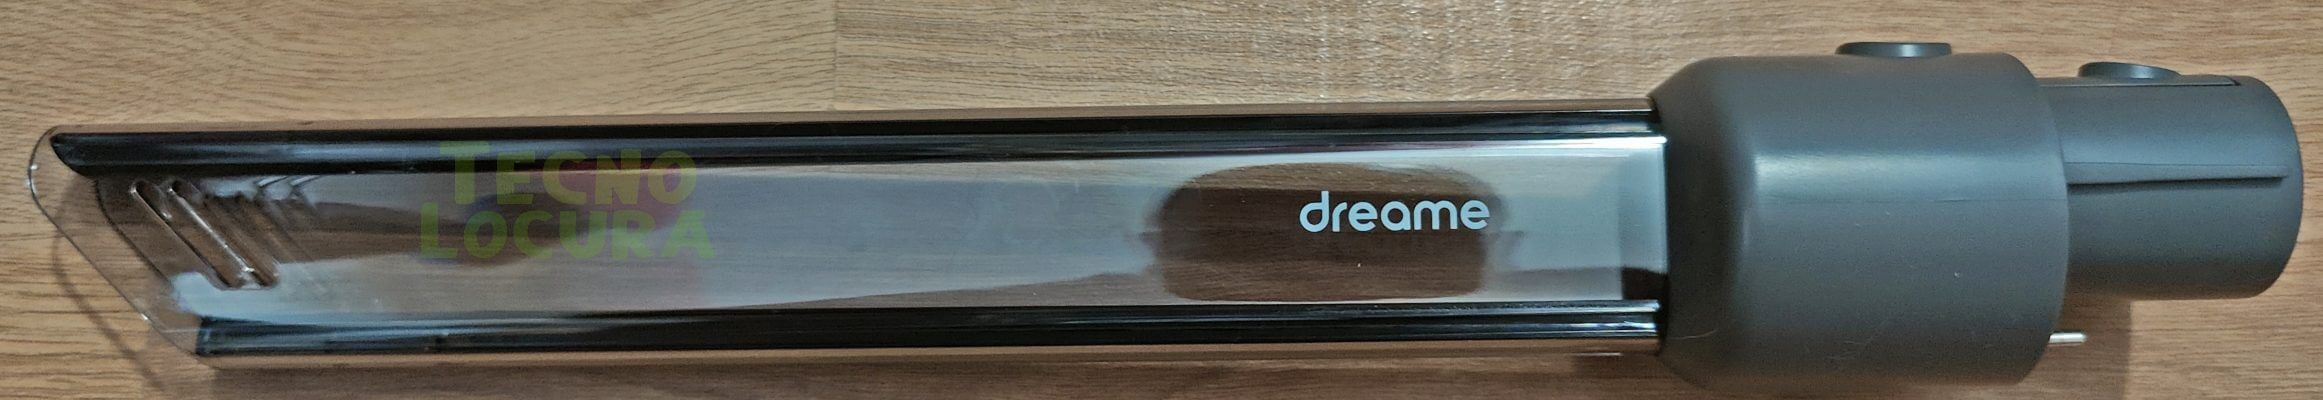 Dreame T30 review